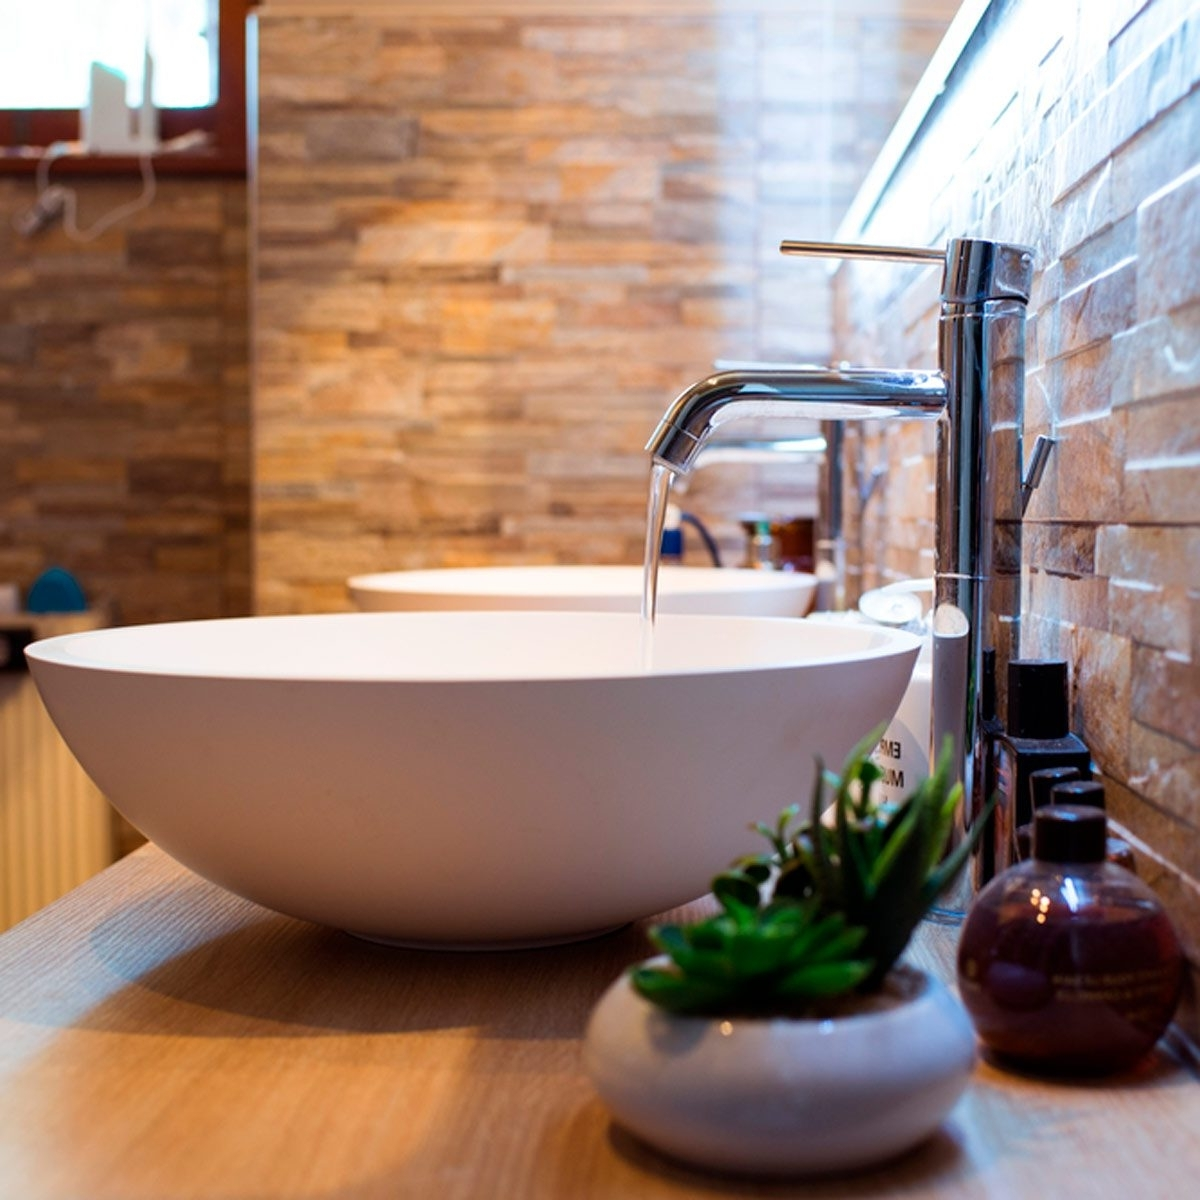 How To Make A Small Bathroom Feel Bigger, According To Joanna Gaines Small Bathroom